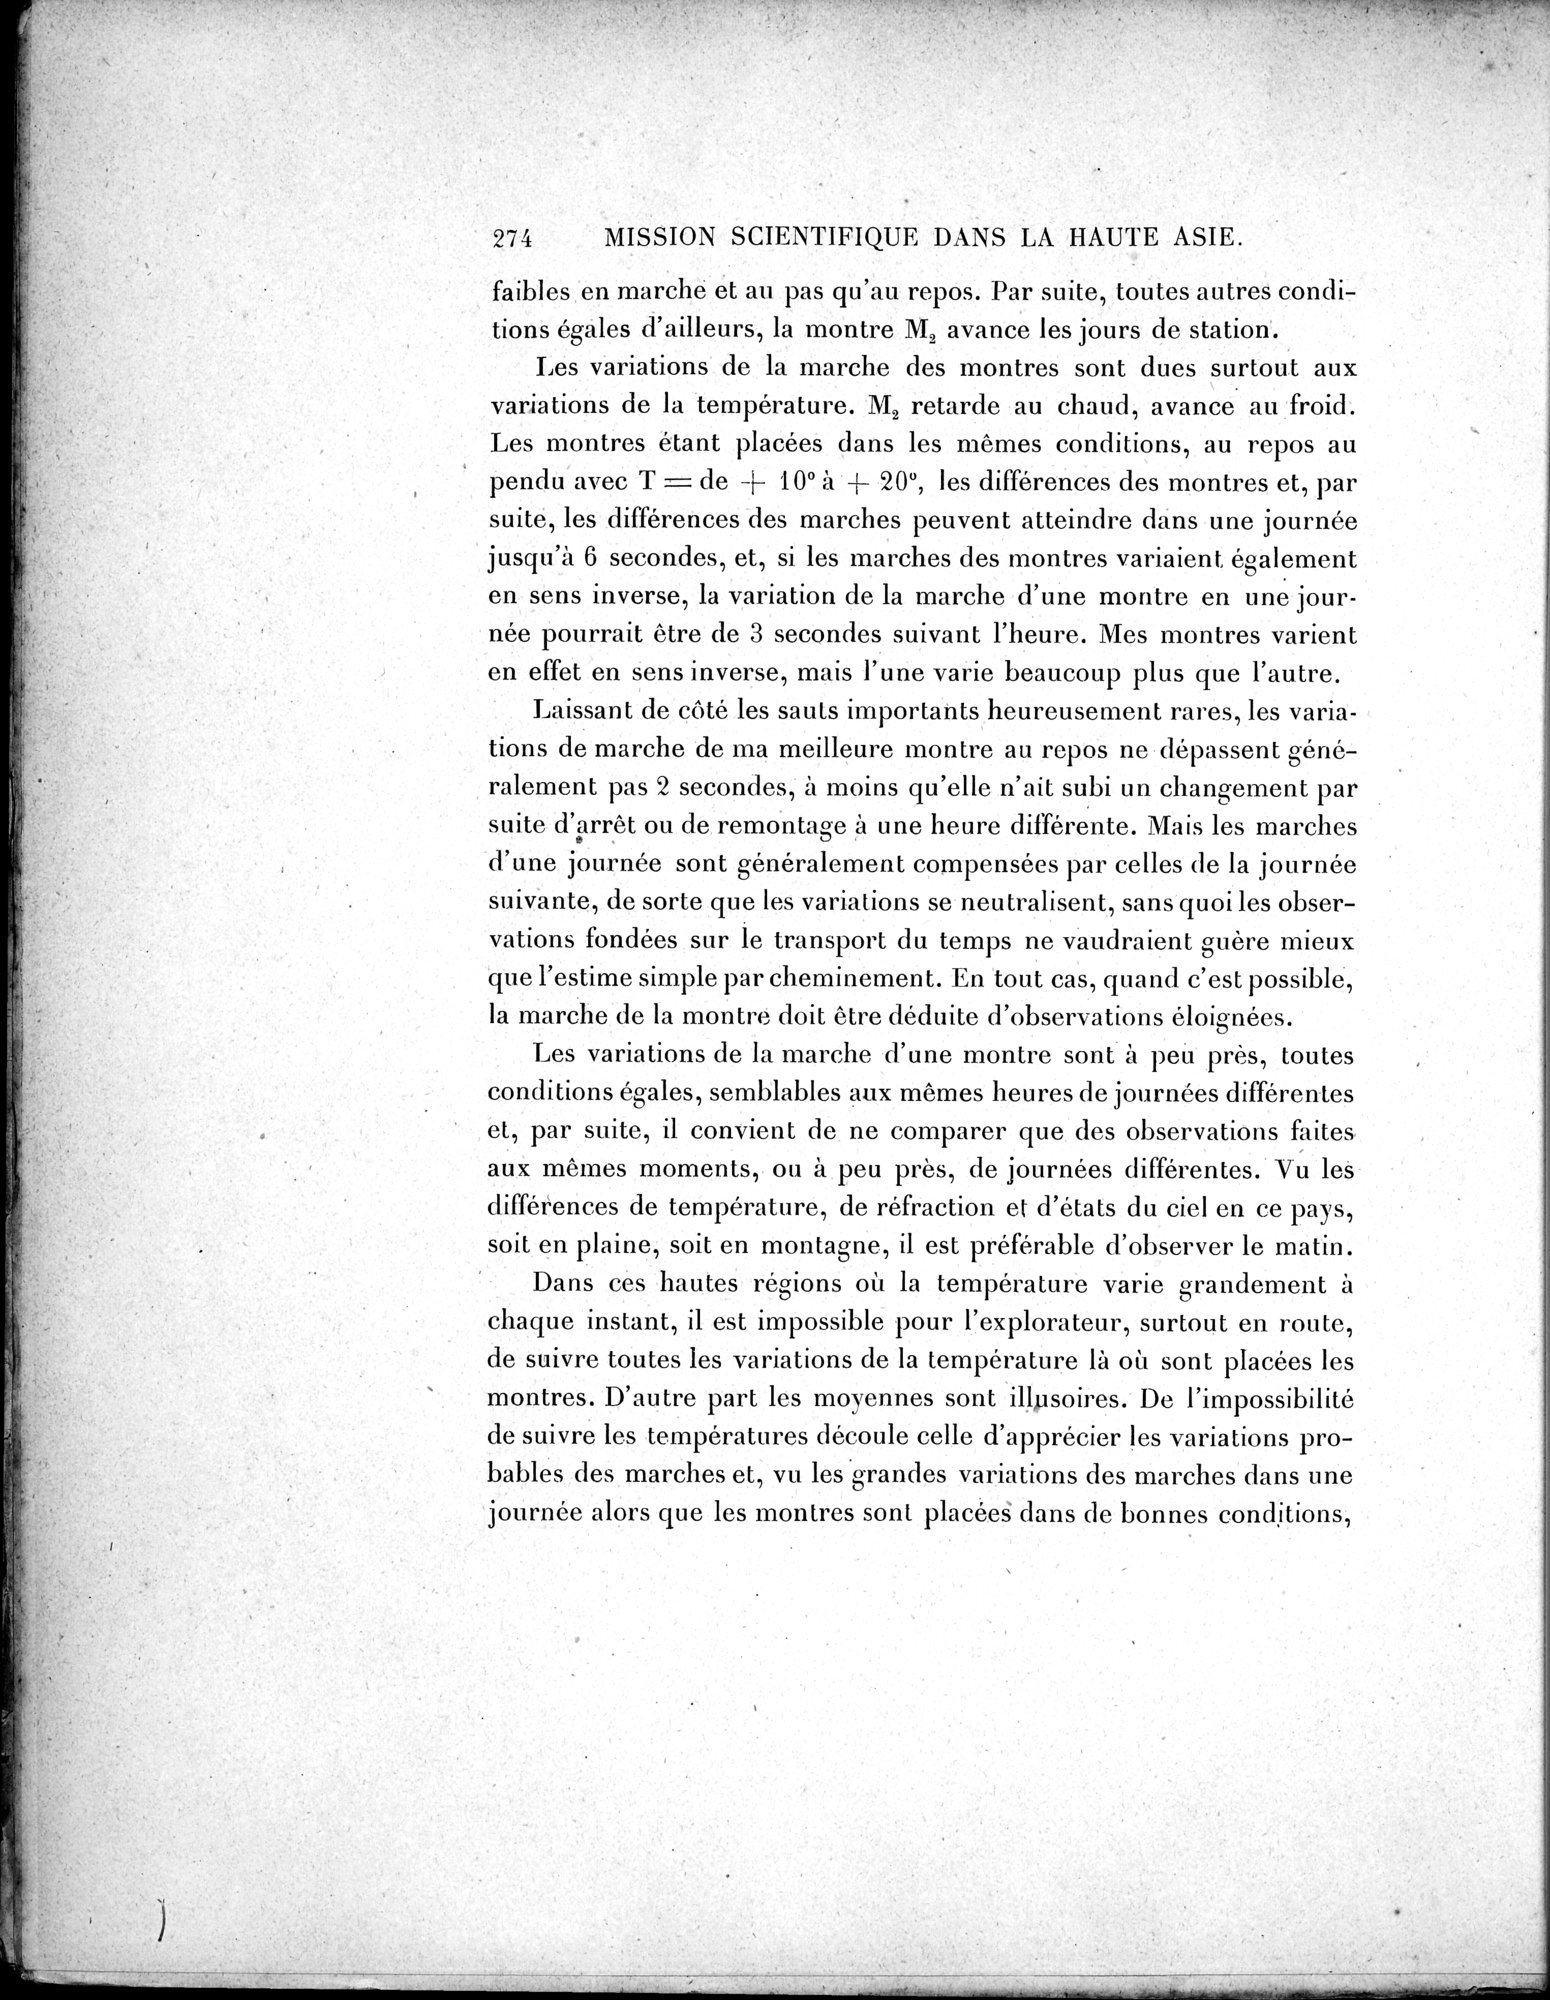 Mission Scientifique dans la Haute Asie 1890-1895 : vol.3 / Page 292 (Grayscale High Resolution Image)